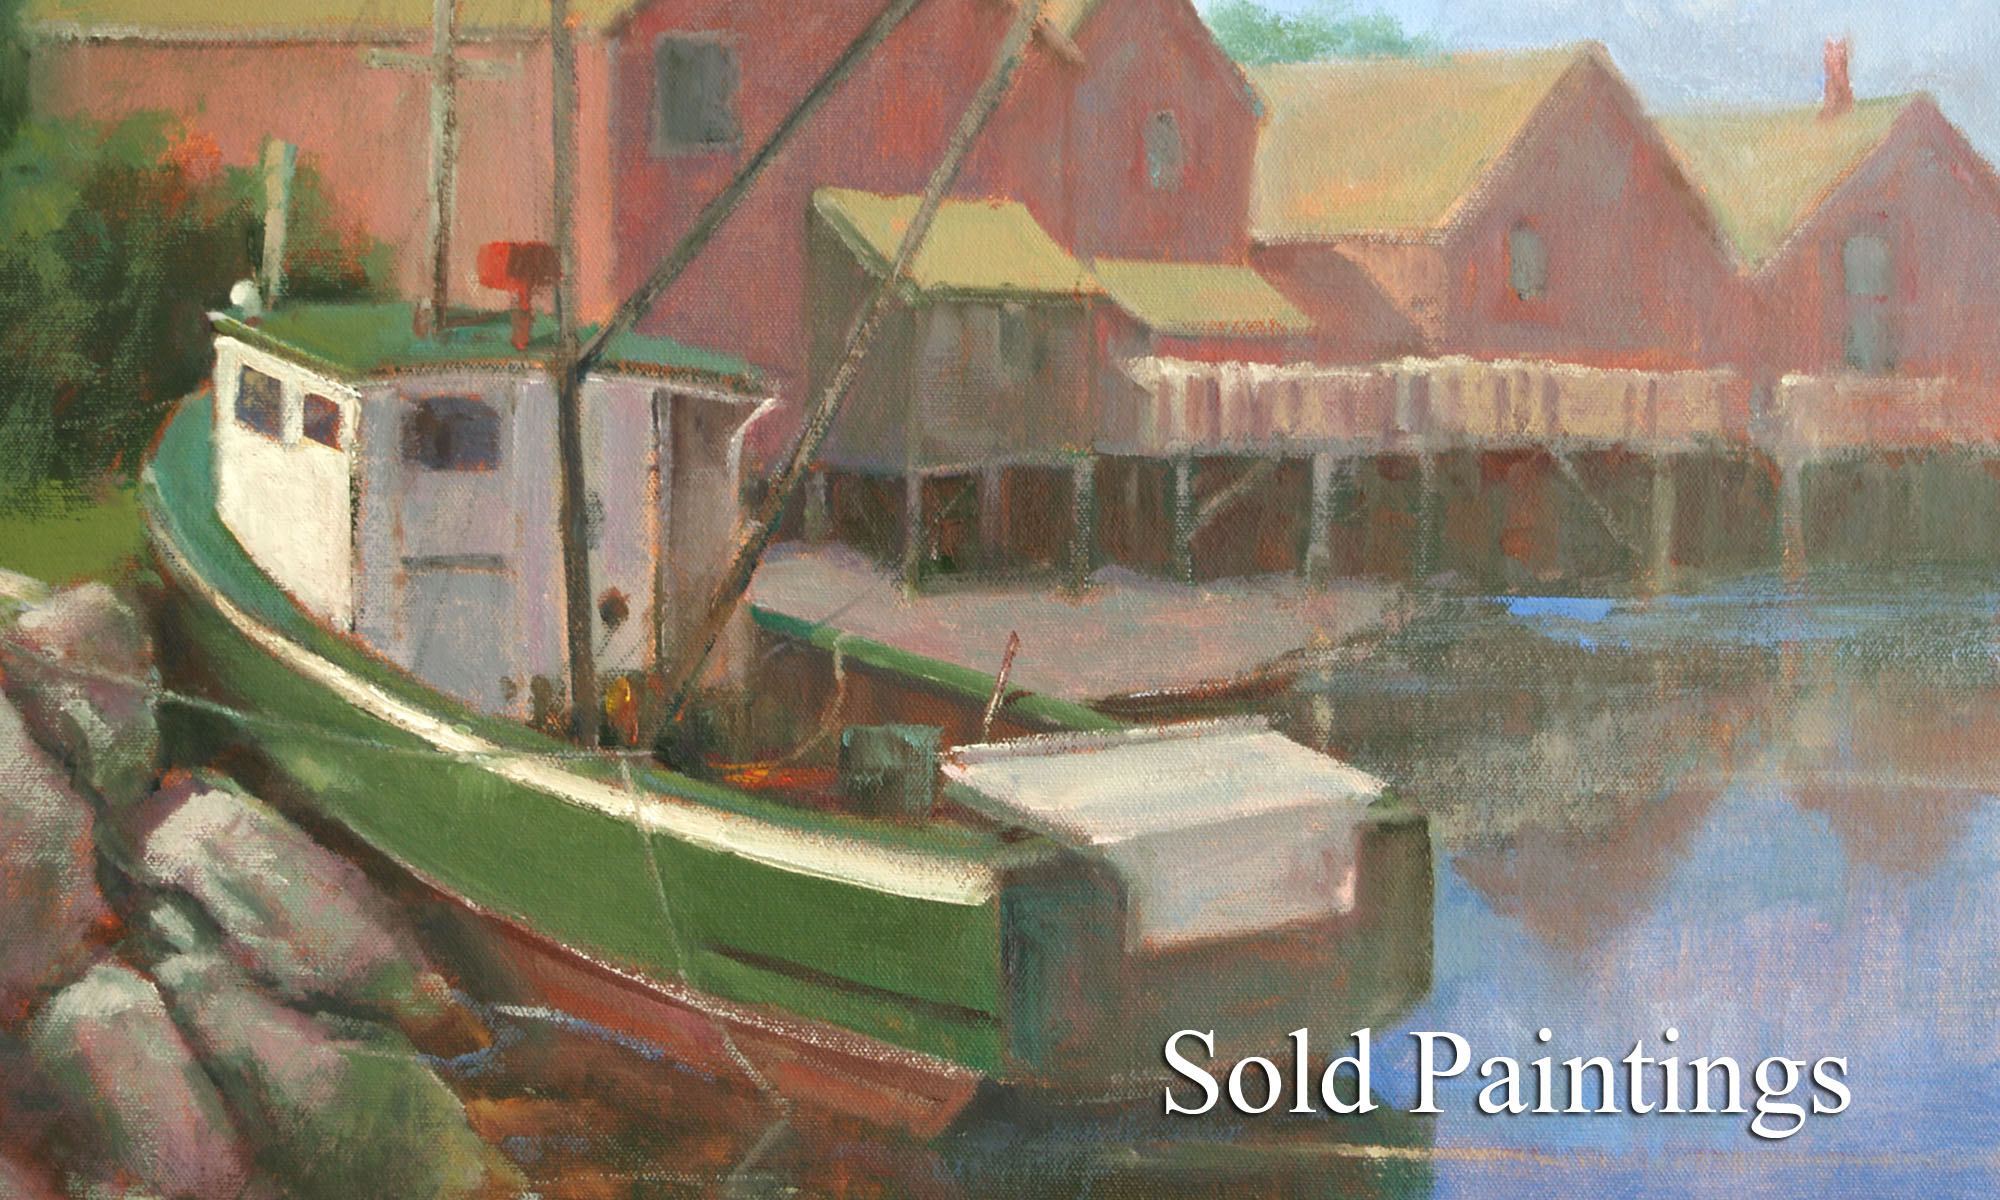 Sold Paintings by Artist Michael Chesley Johnson